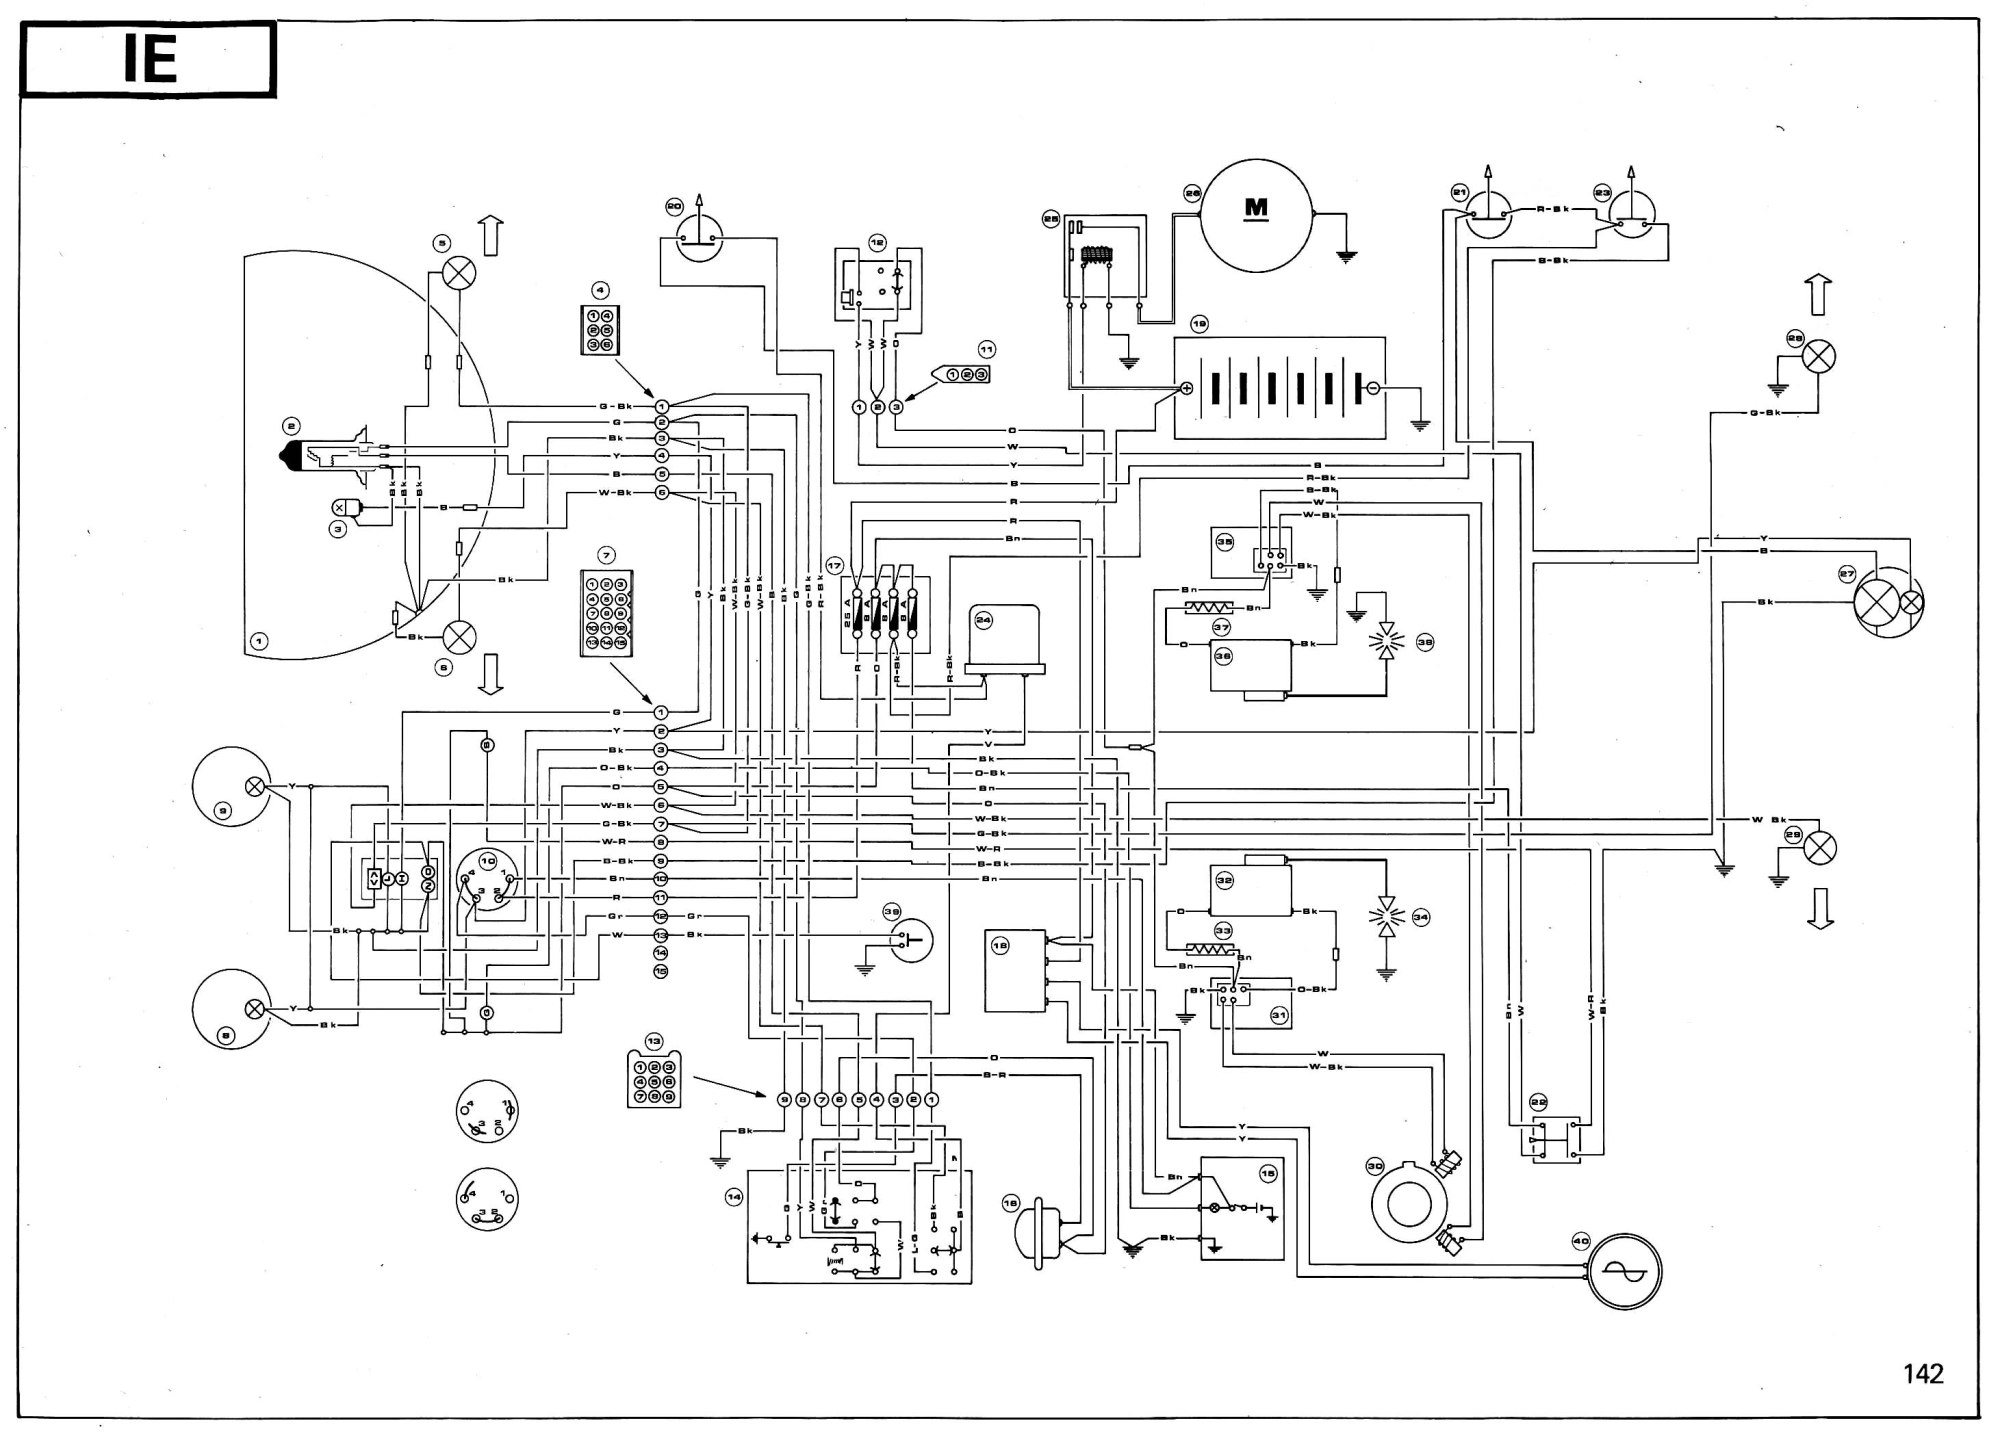 hight resolution of 142 rotax 912 engine diagram ducati pantah wiring diagram